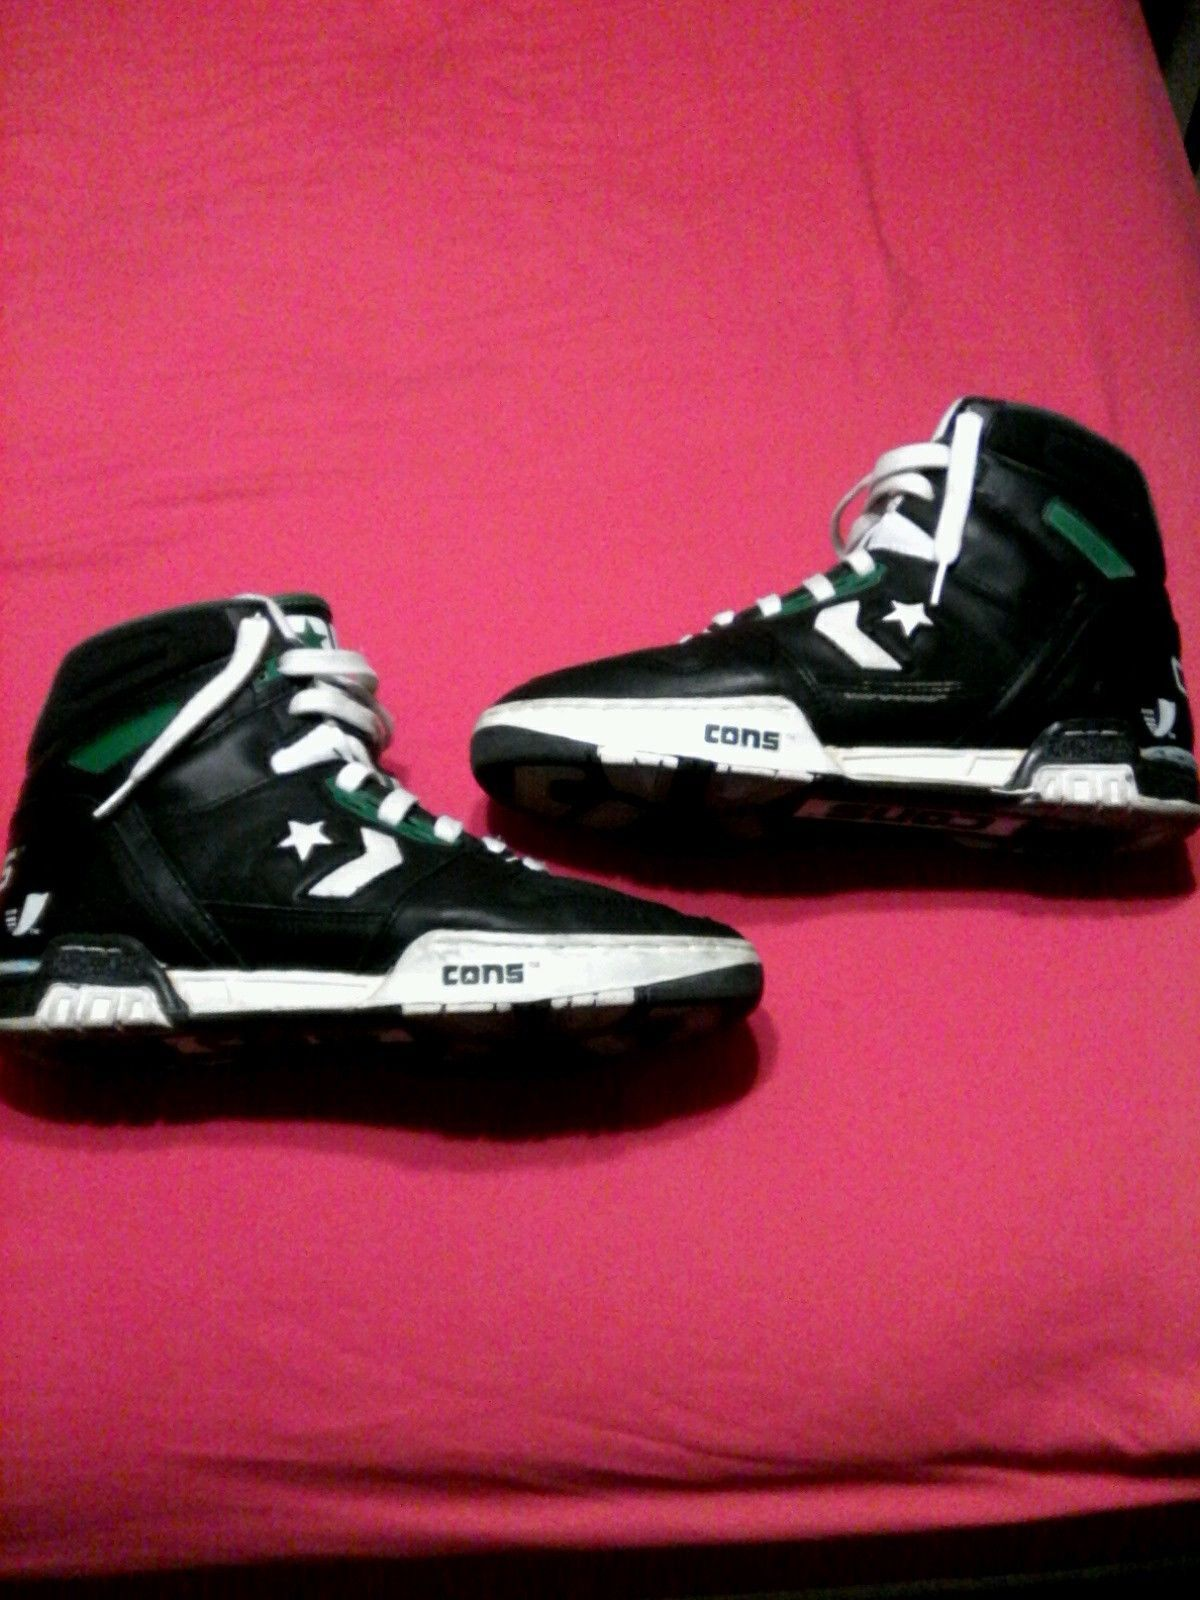 17d22b9b1309 Converse cons erx 300 DEAD STOCK hard to find rare in great condition for  their age size 11 sorry no original box sorry no international shipping.